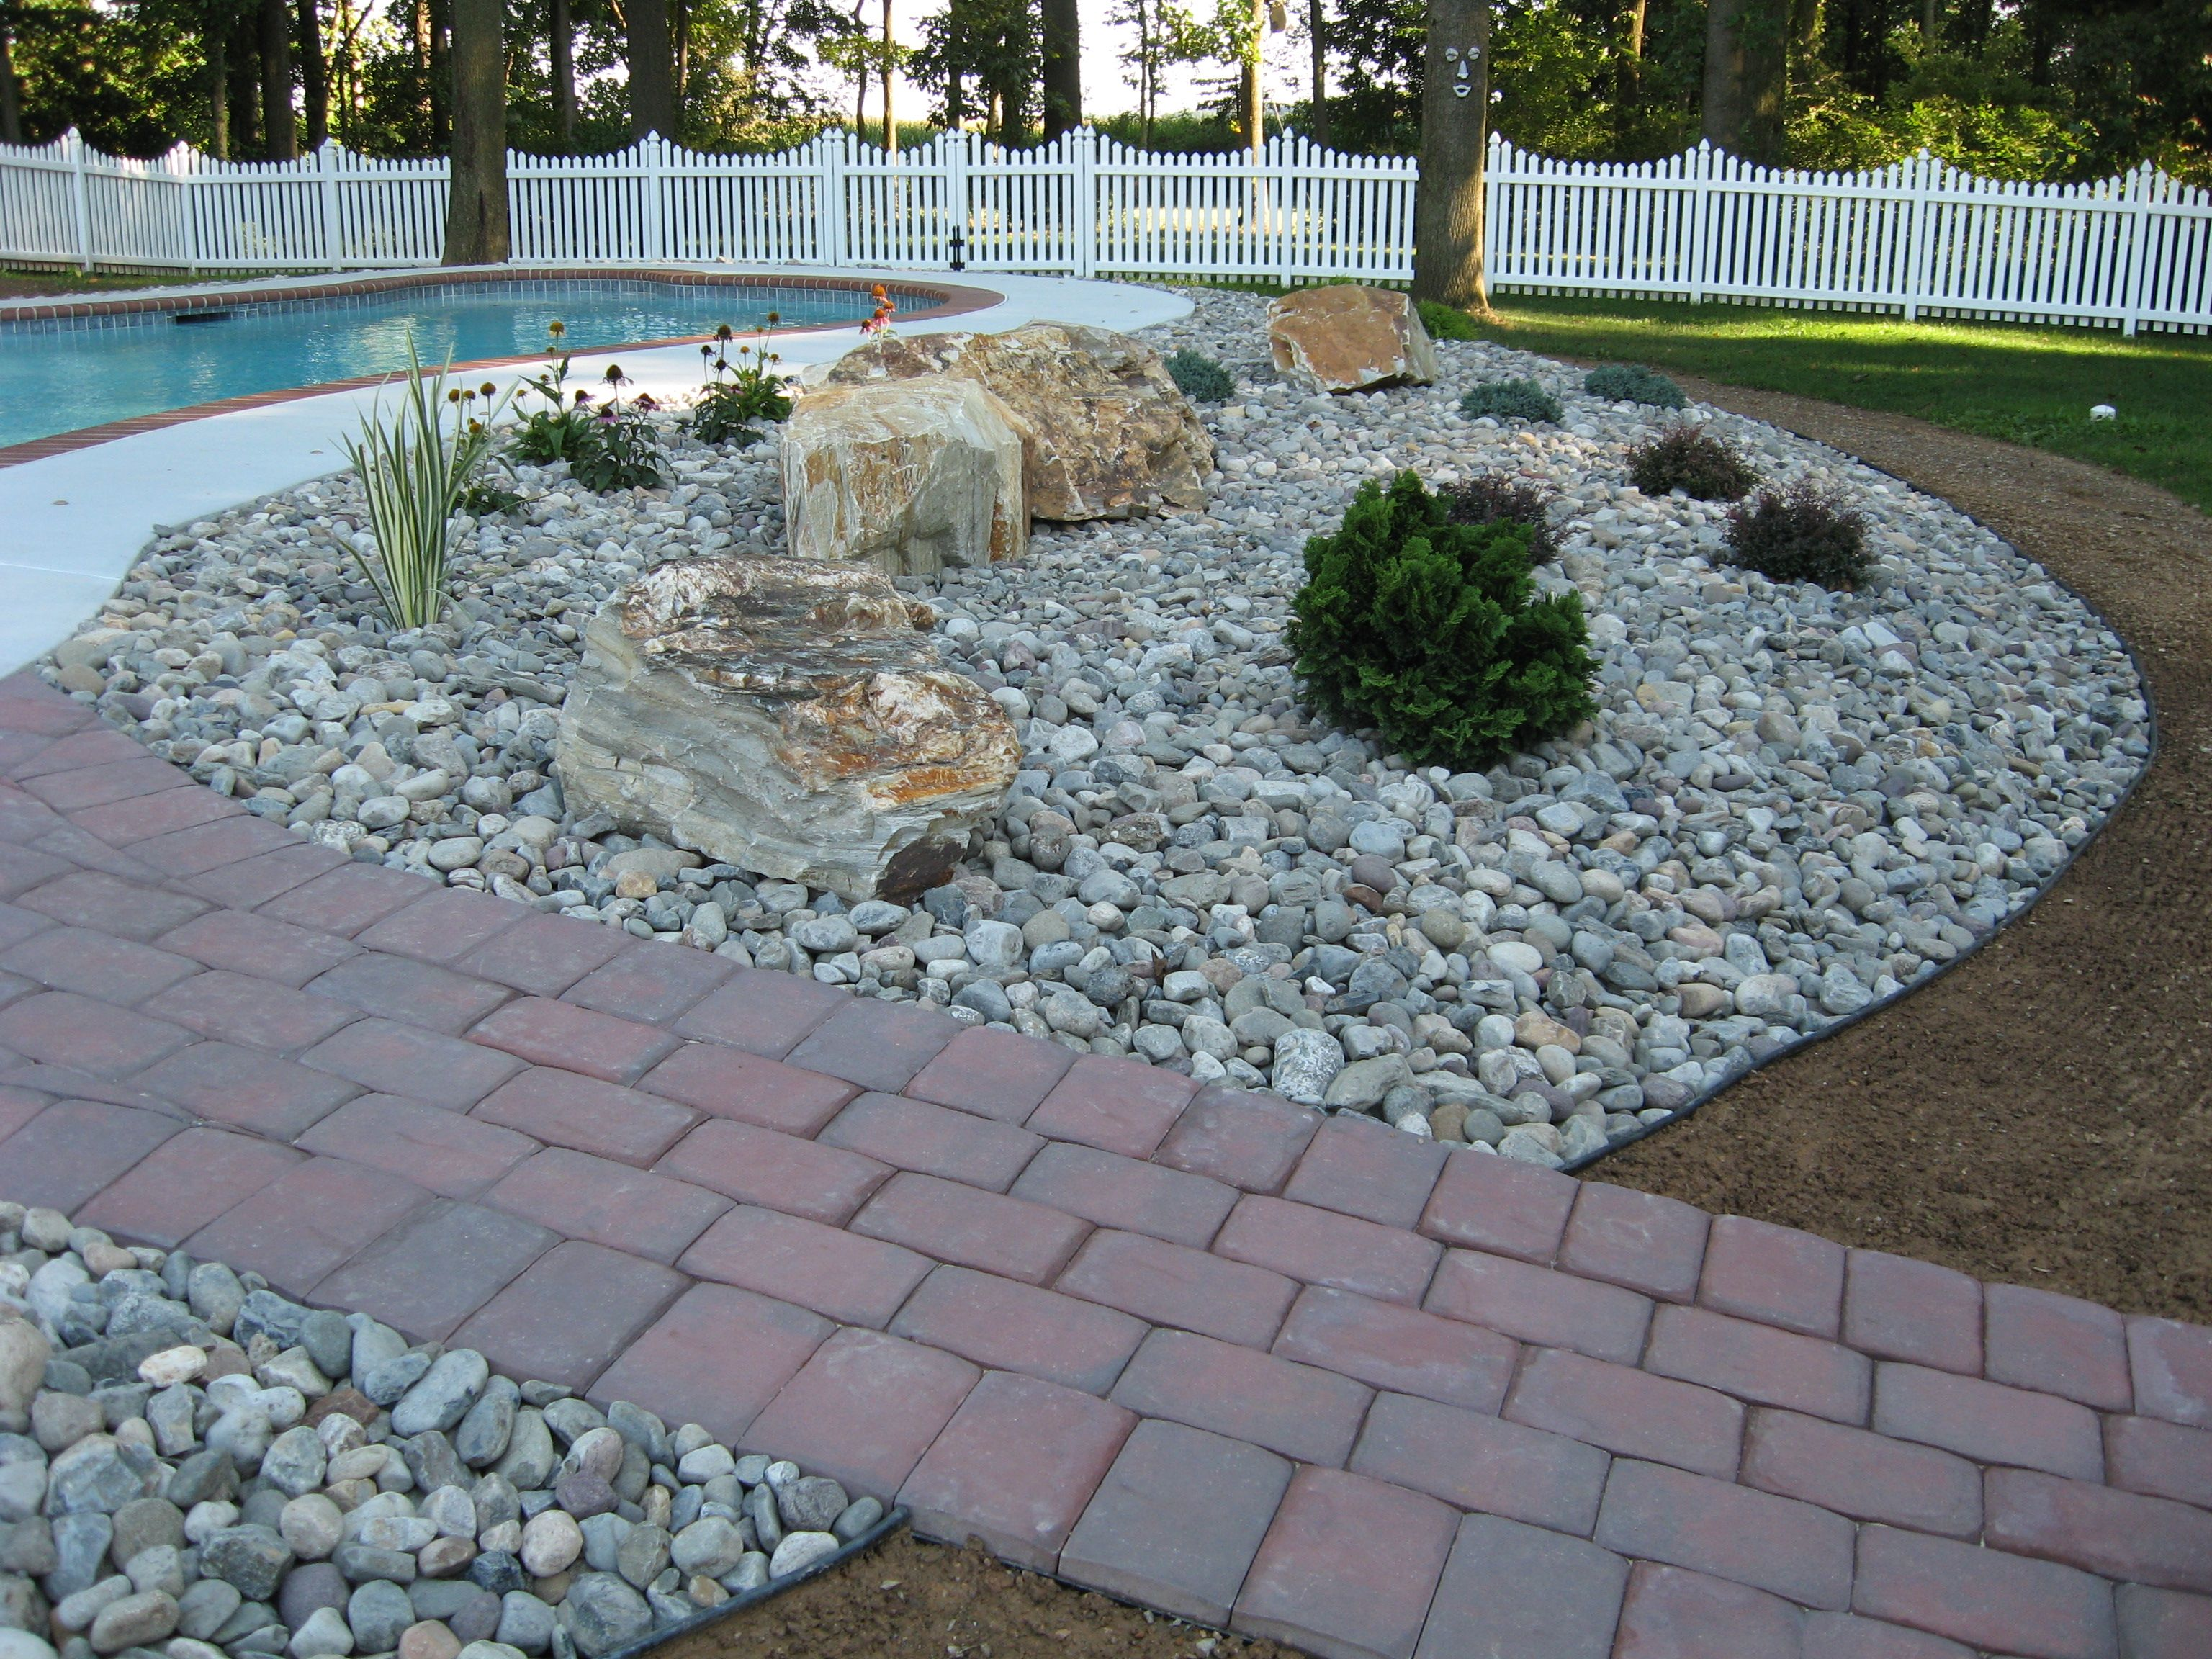 Landscaping With Rocks And Stones River Stones & Boulders With